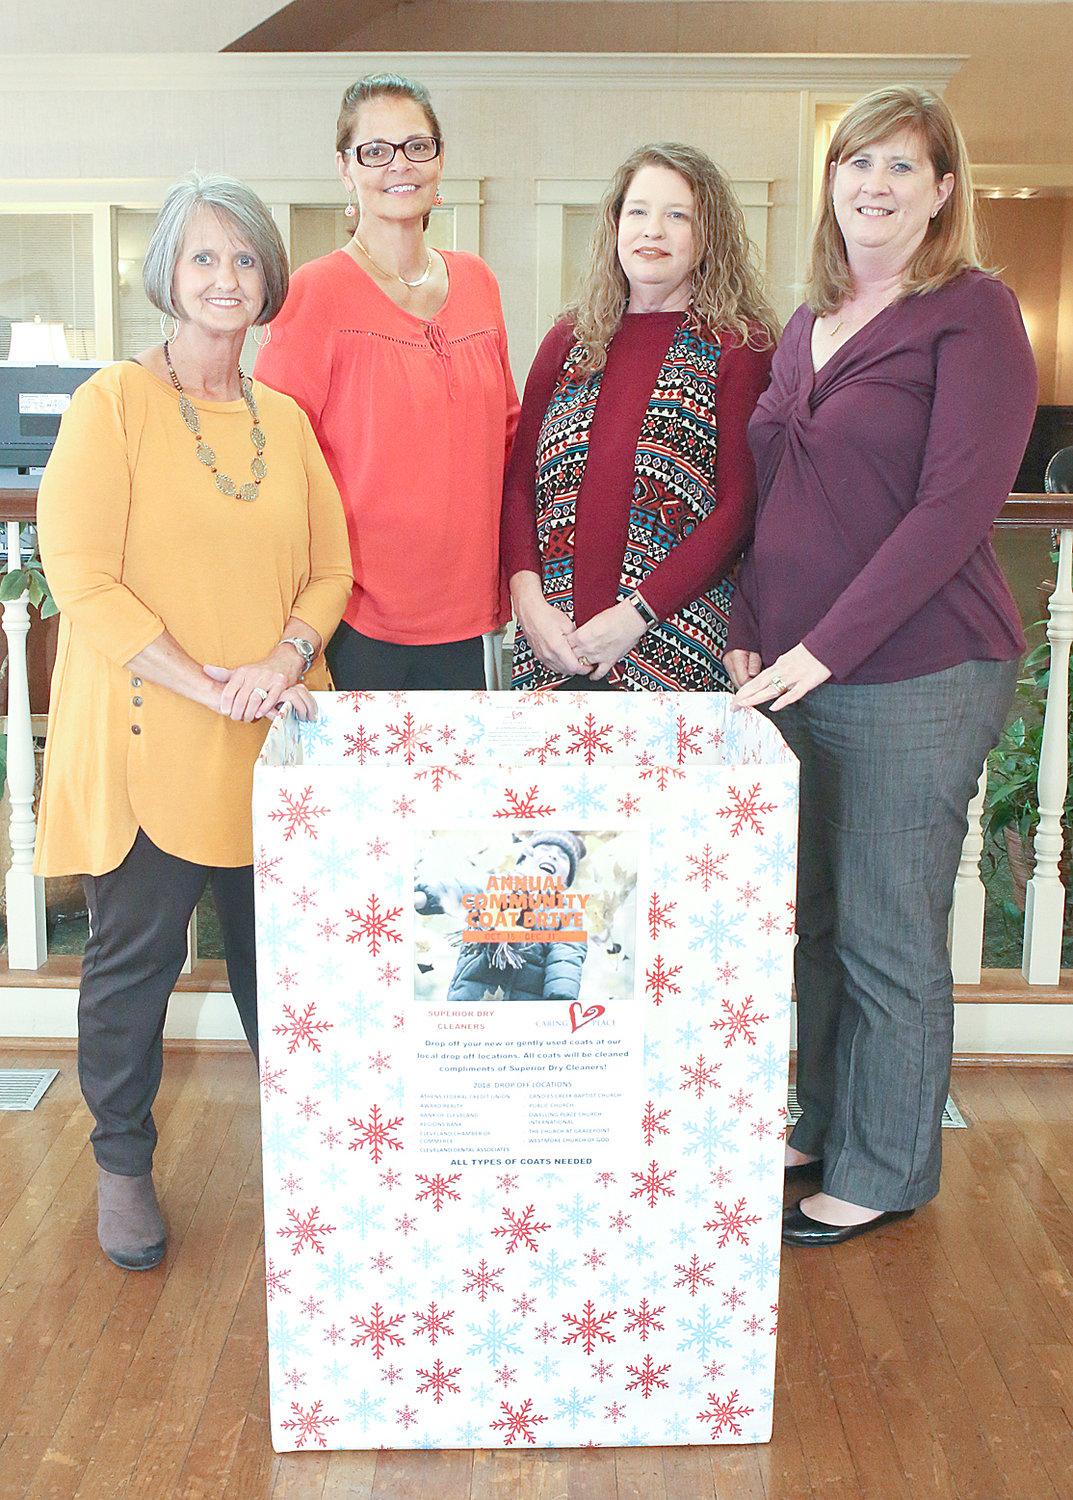 COLLECTION BOXES like this one have been placed at local businesses and churches for The Caring Place's annual Community Coat Drive. From left are employees of Bank of Cleveland's downtown location, Becky Kinser, Joan Ownby, Shannon Petersen and Janice Mull.